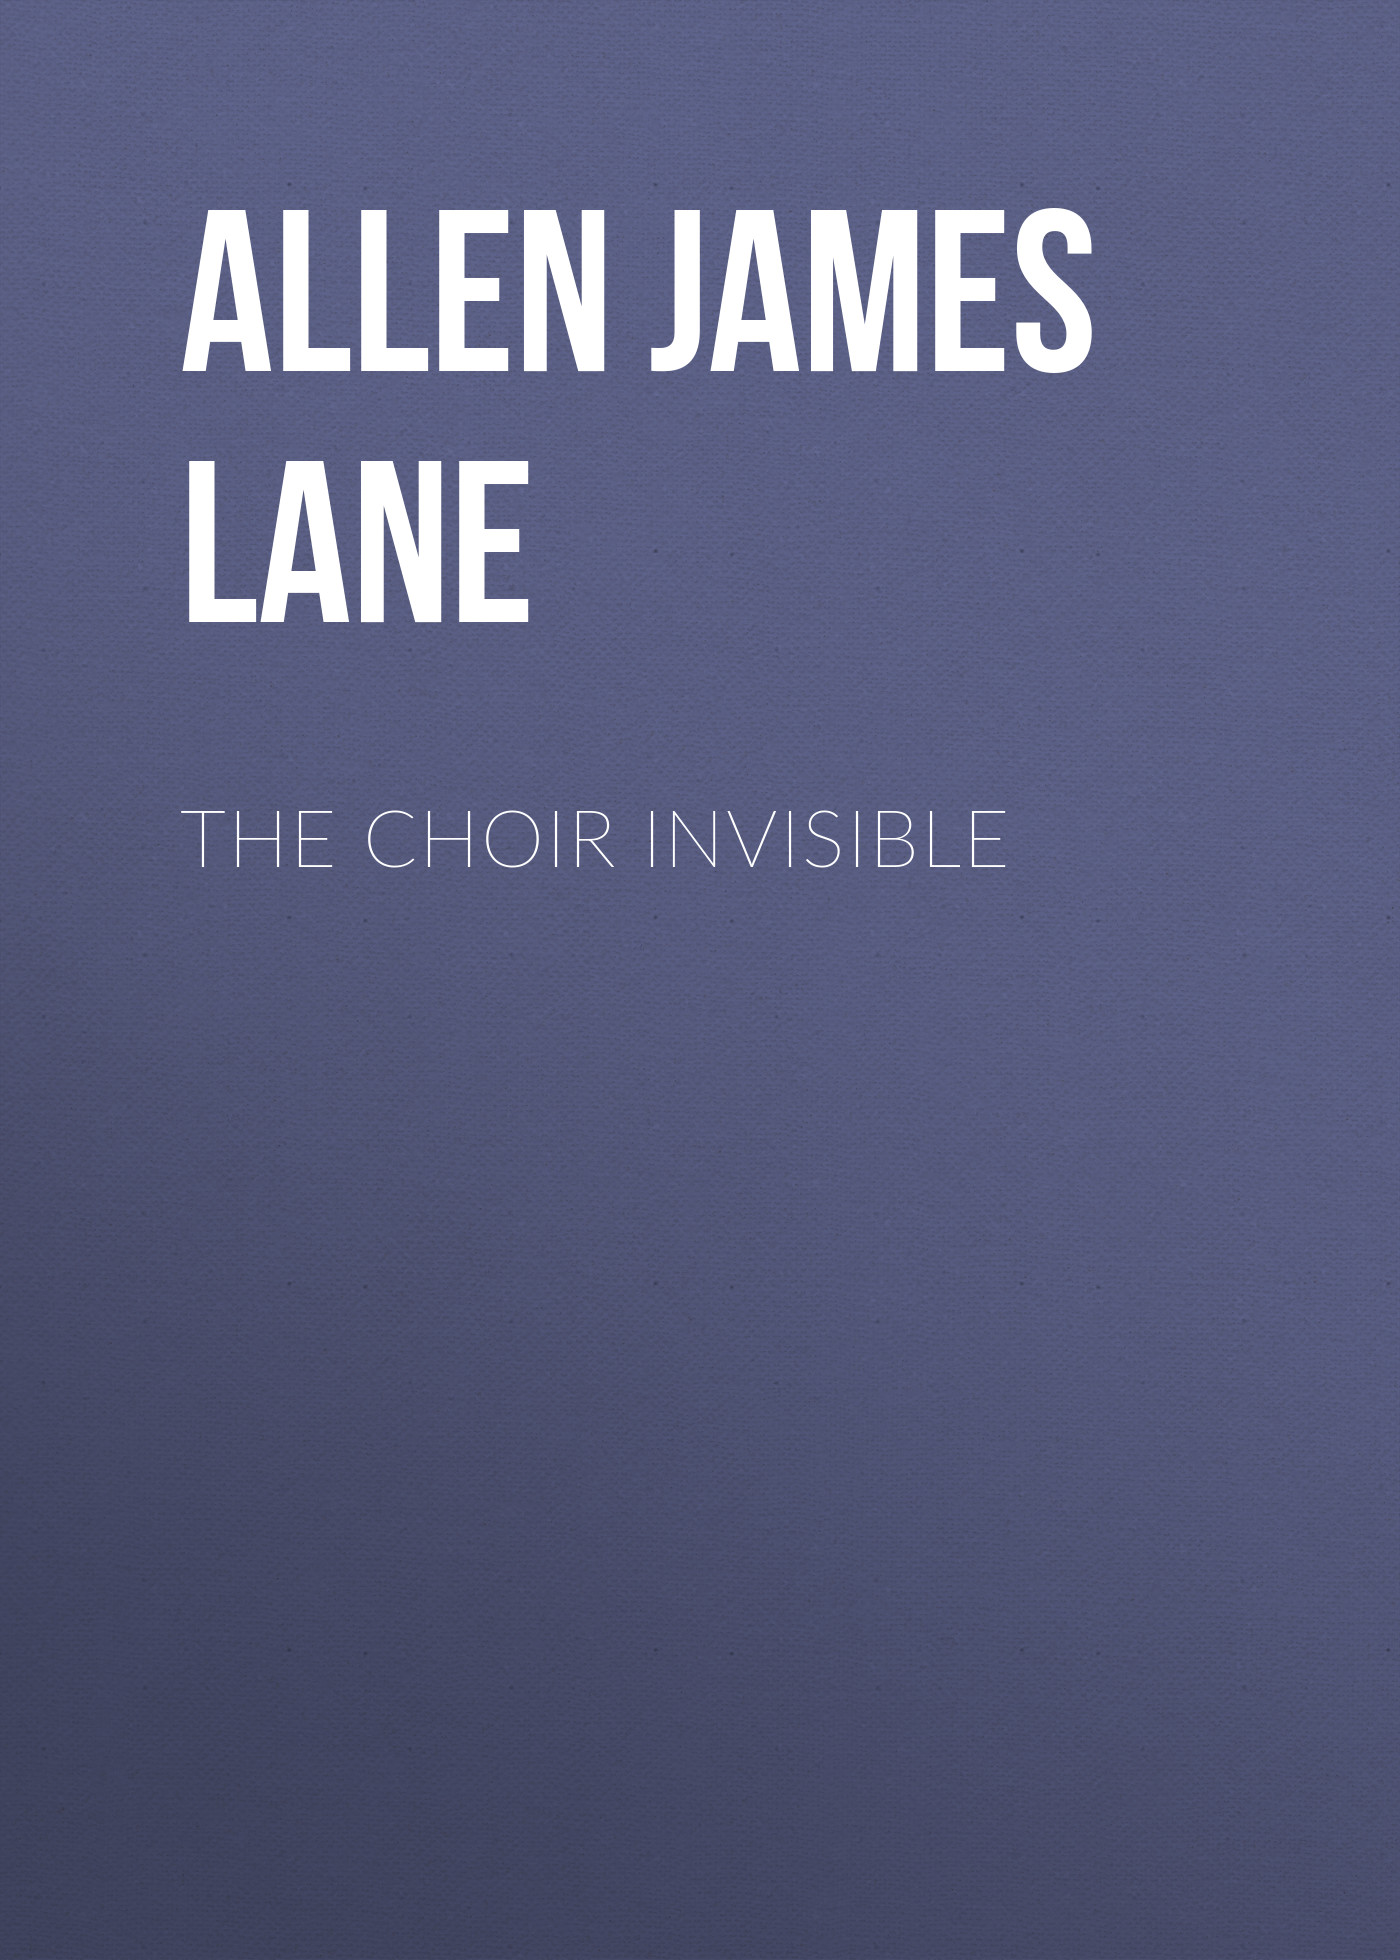 Allen James Lane The Choir Invisible the invisible the invisible rispah